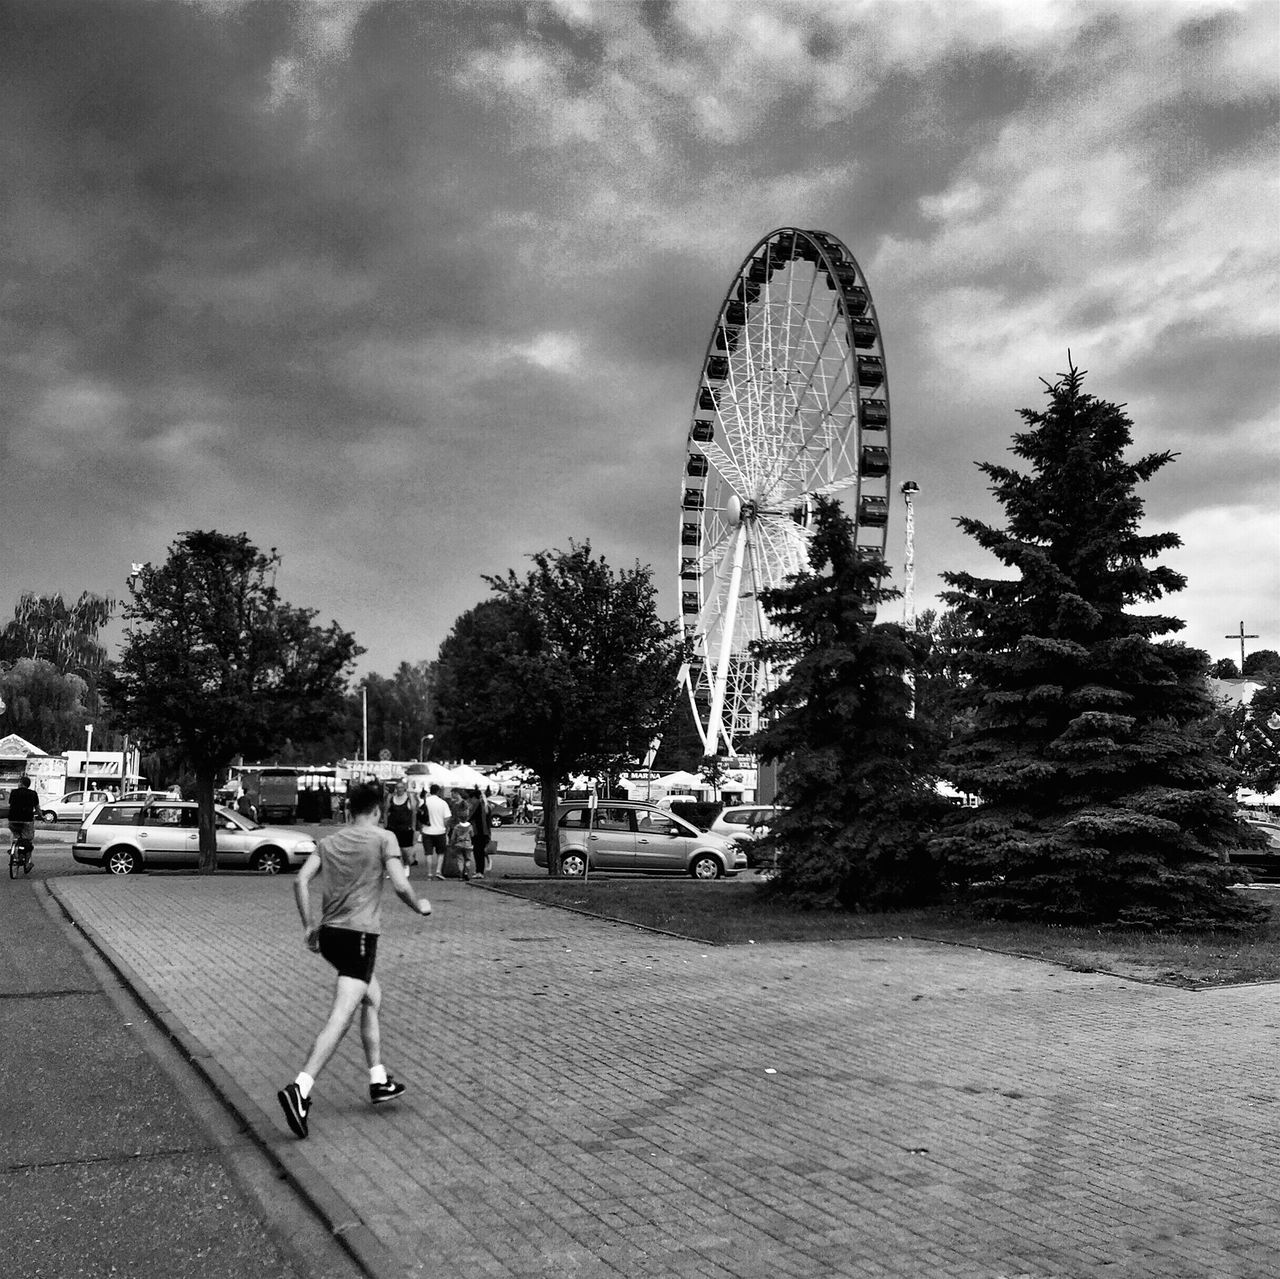 tree, full length, leisure activity, cloud - sky, outdoors, ferris wheel, sky, rear view, city life, building exterior, built structure, arts culture and entertainment, real people, architecture, amusement park, day, men, city, one person, adult, people